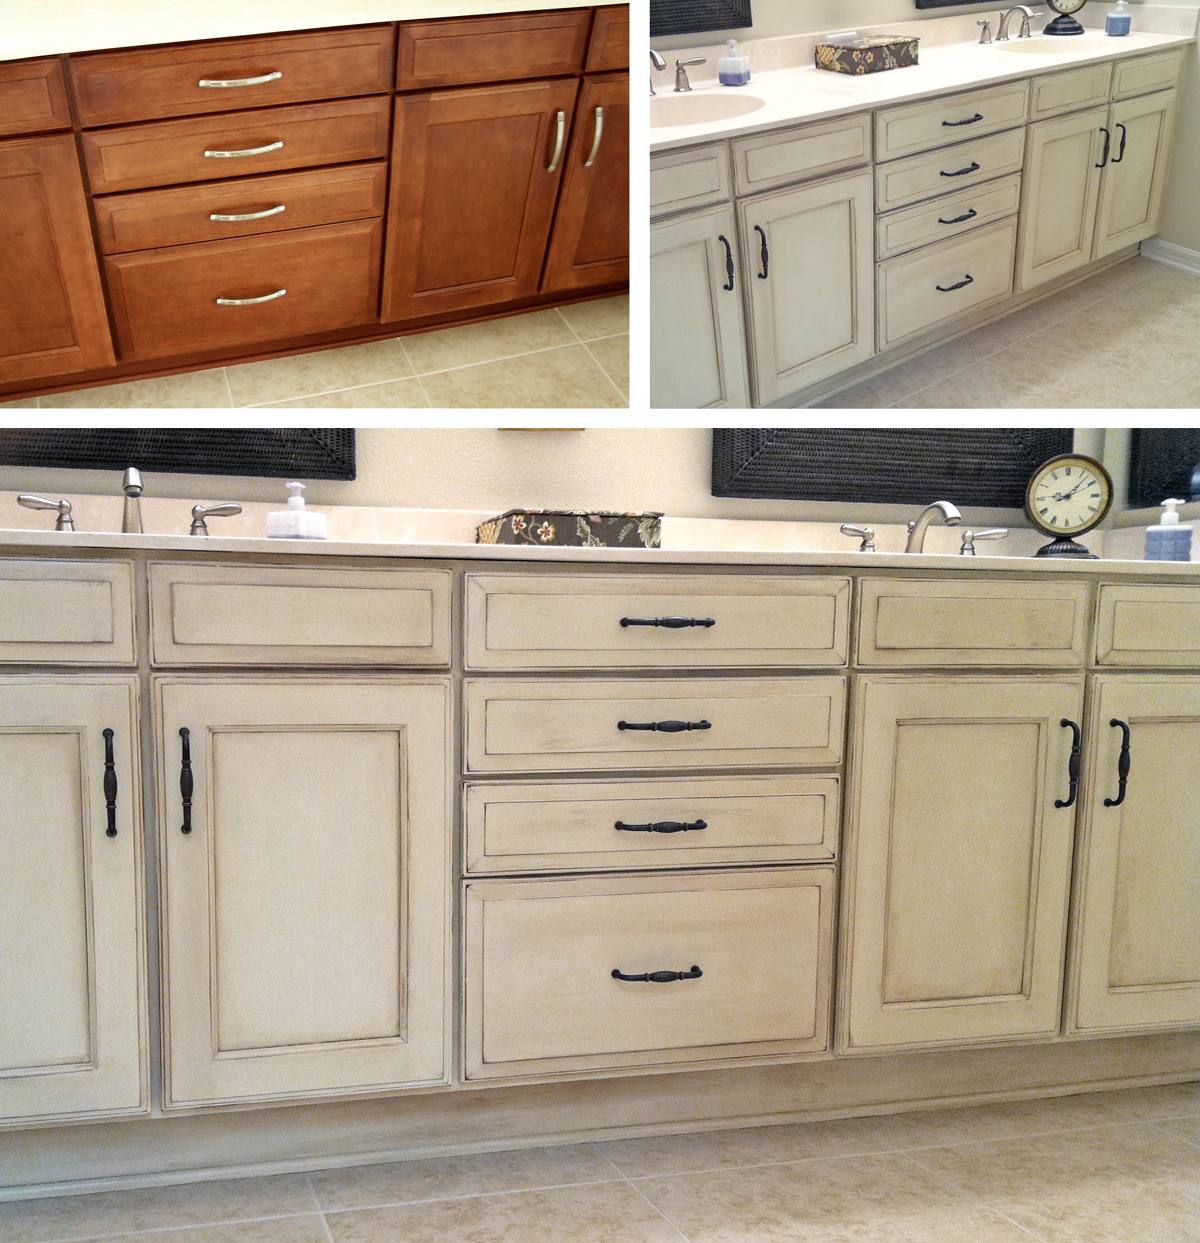 Masterbathcabinets Chalk Paint Kitchen Cabinets Chalk Paint Kitchen Painting Cabinets